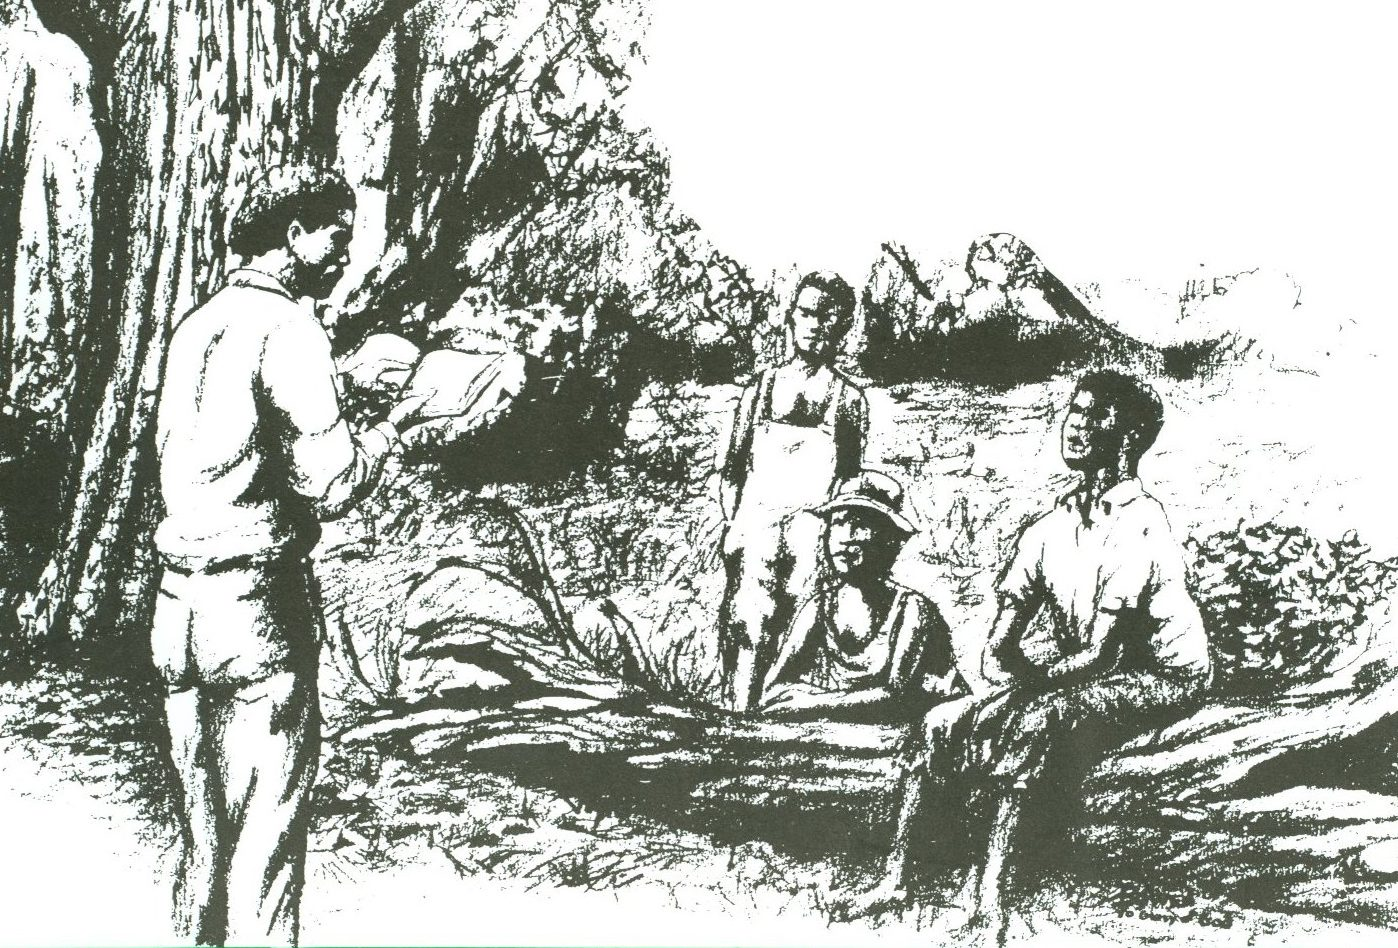 Pencil sketch of a forest scene set in a clearing, framed by a massive oak tree. One child sits on a fallen log. Another is sitting on the ground, resting his arms on the log, and a third stands nearby. All are watching a man, standing, reading to them from a book.